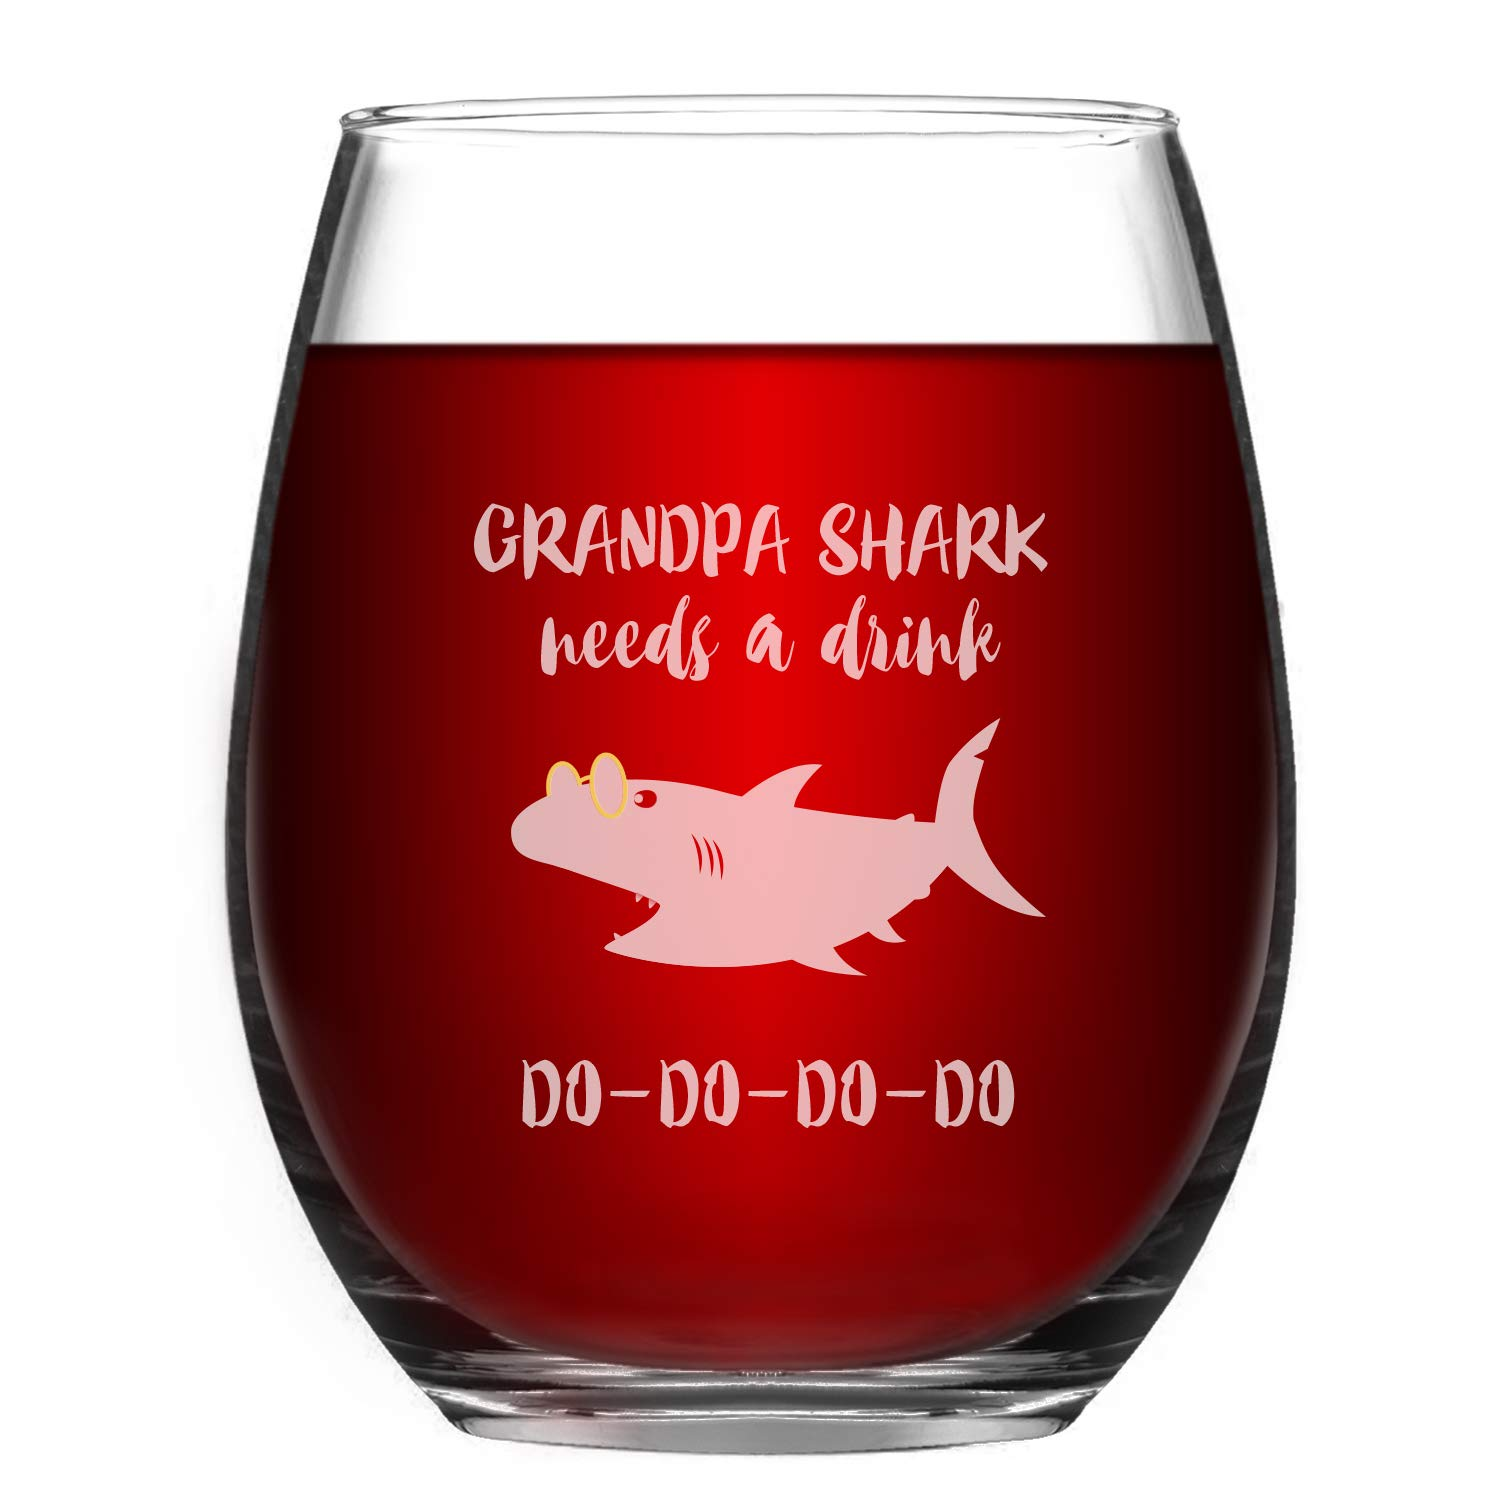 Grandpa Wine Glass Grandpa Shark Needs a Drink Do Do Novelty Wine Glass for men with Sayings Funny Stemless Wine Glass Funny Shark Gifts & Cup Accessories for Shark Lovers Grandpa FIL Dad Father's Day